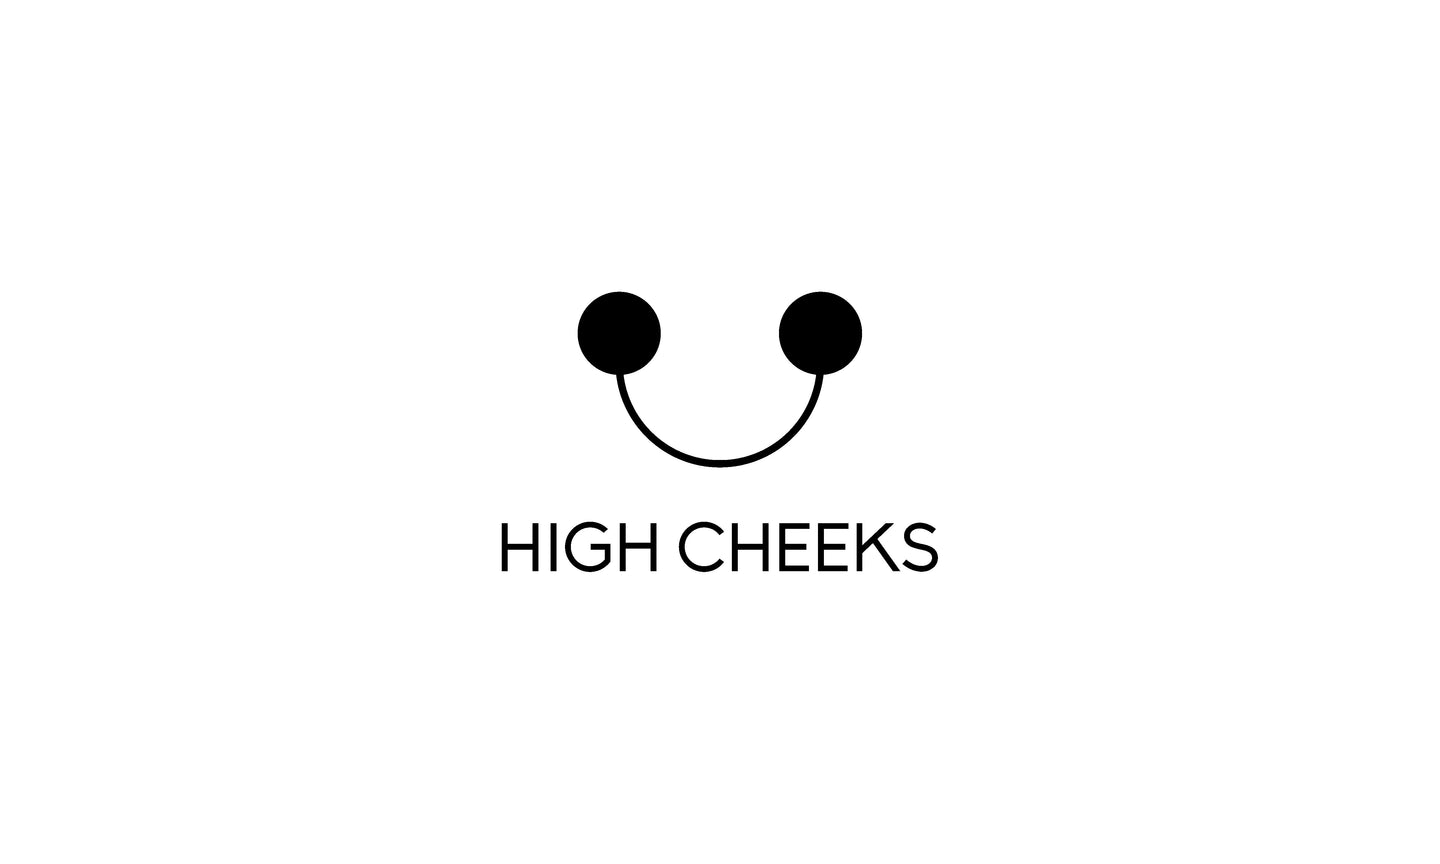 High Cheeks